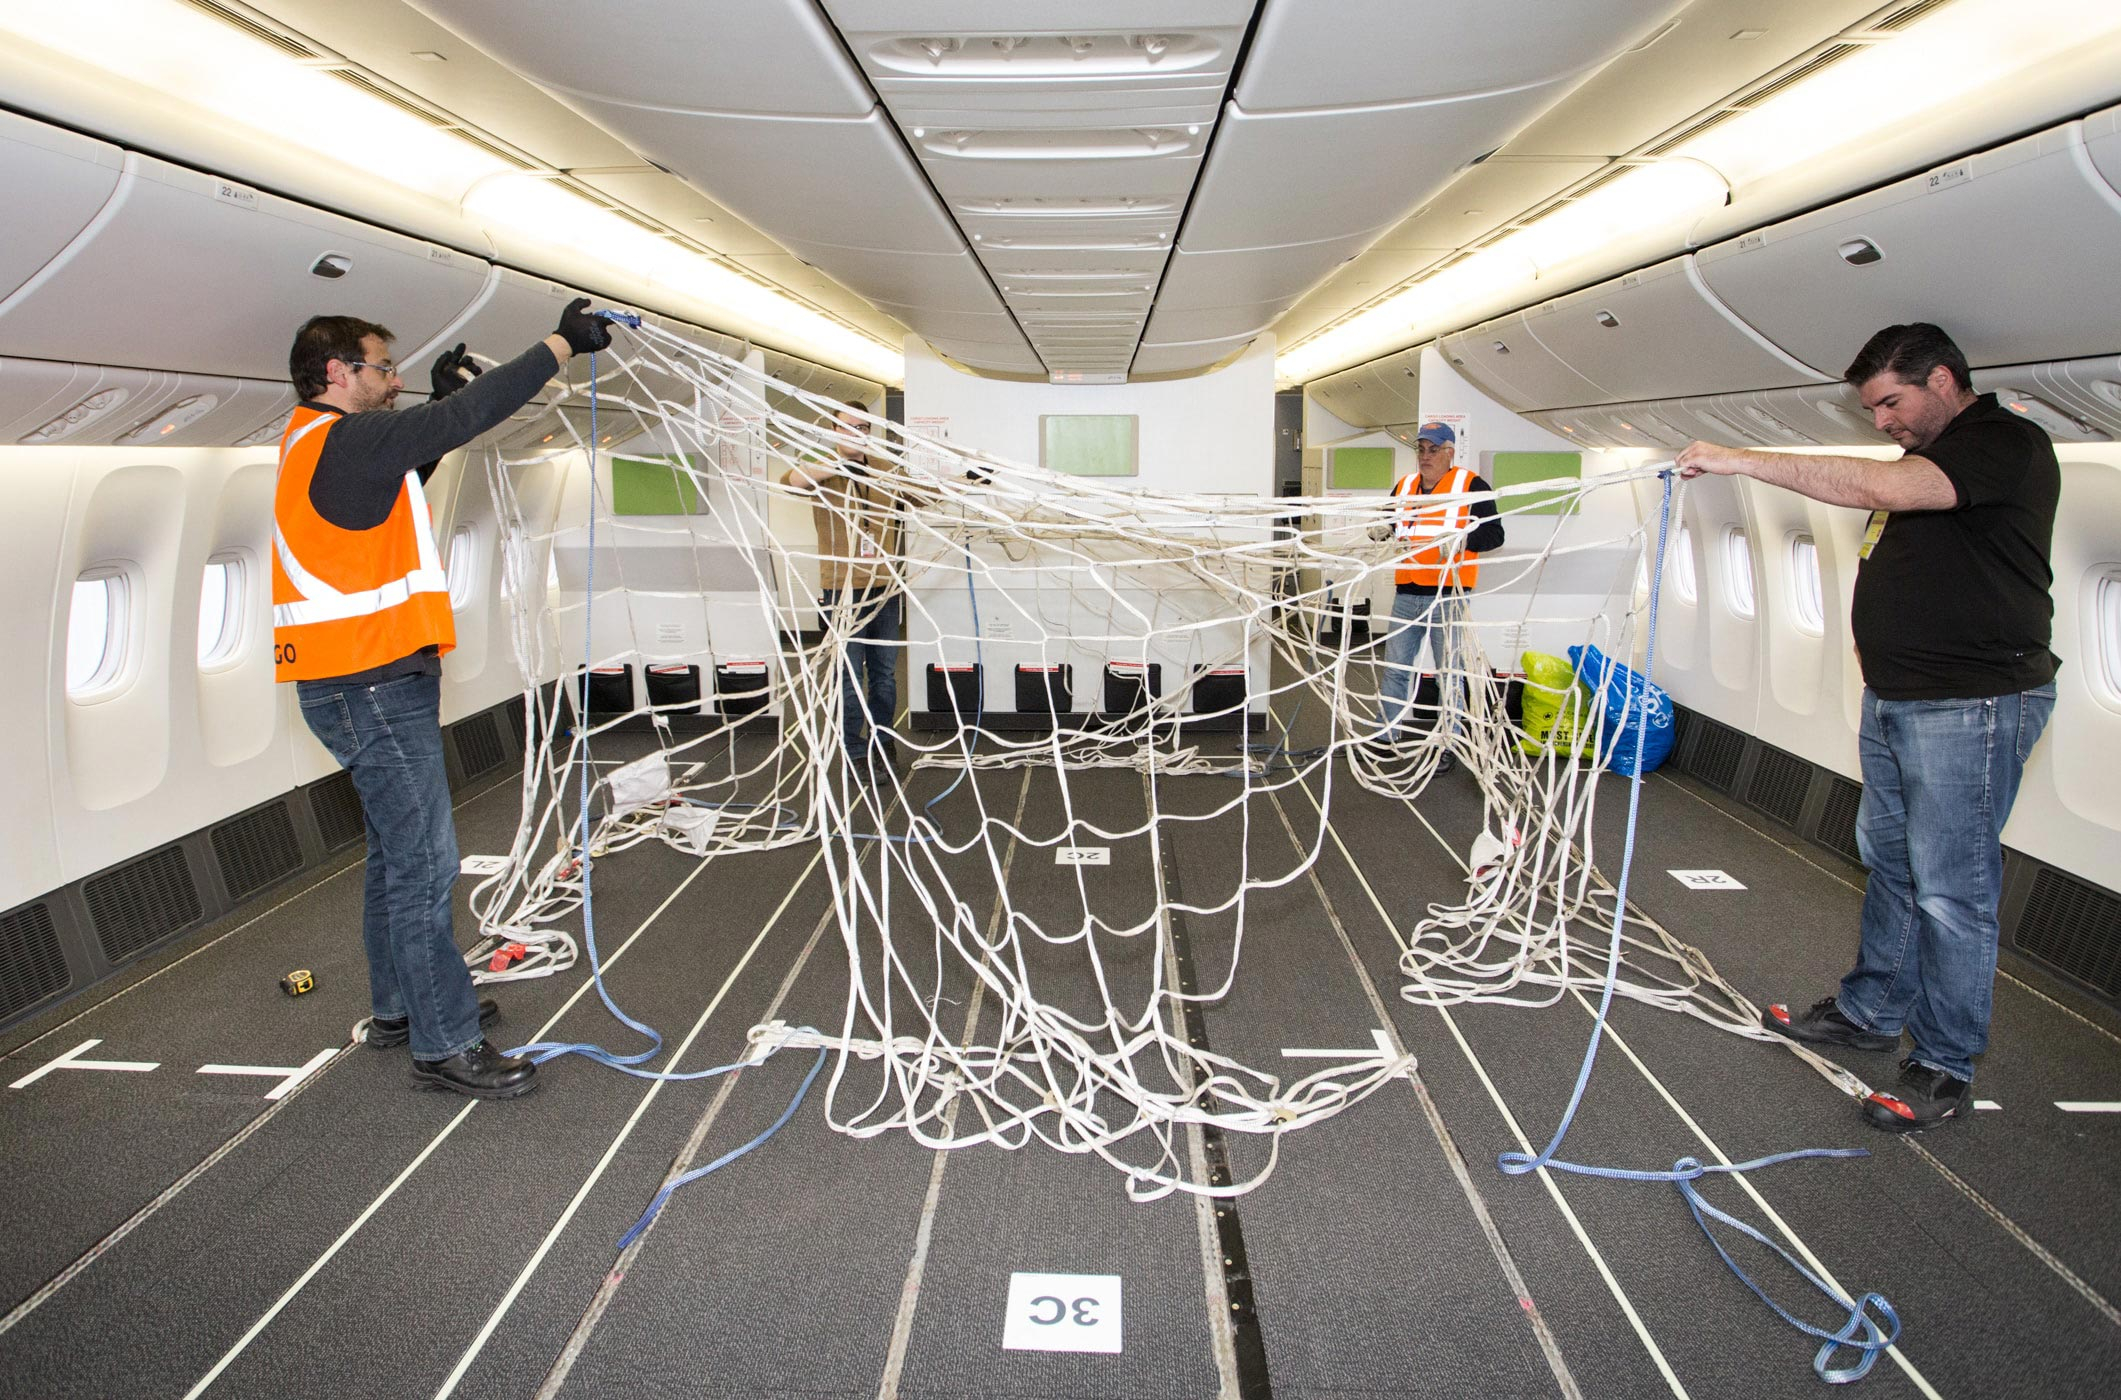 Boeing 777-300ER aircraft being modified to transport cargo in the passenger cabin, doubling cargo capacity.